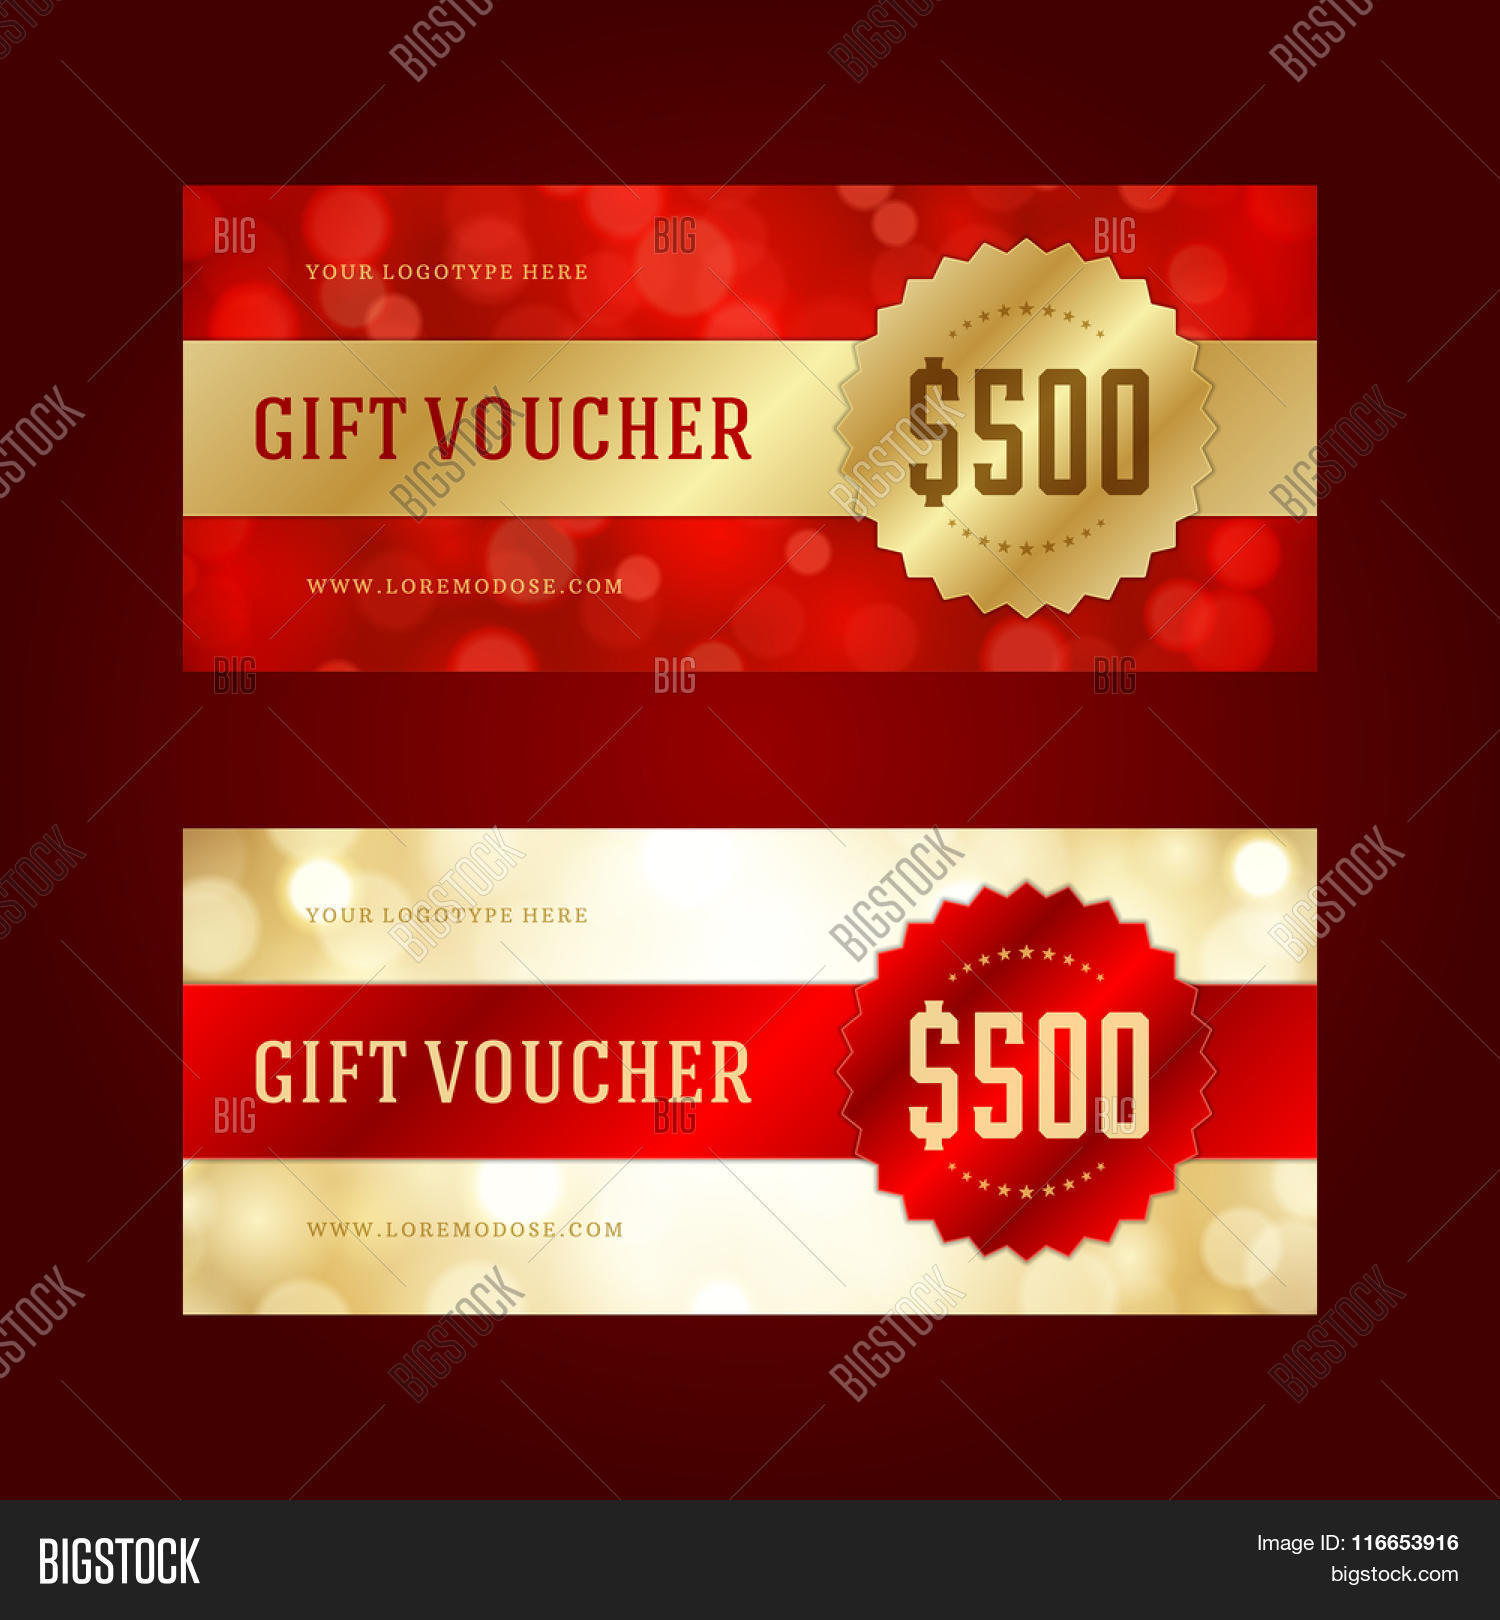 Gift voucher template design vector photo bigstock gift voucher template design and vintage style vector illustration voucher vector voucher template yadclub Choice Image